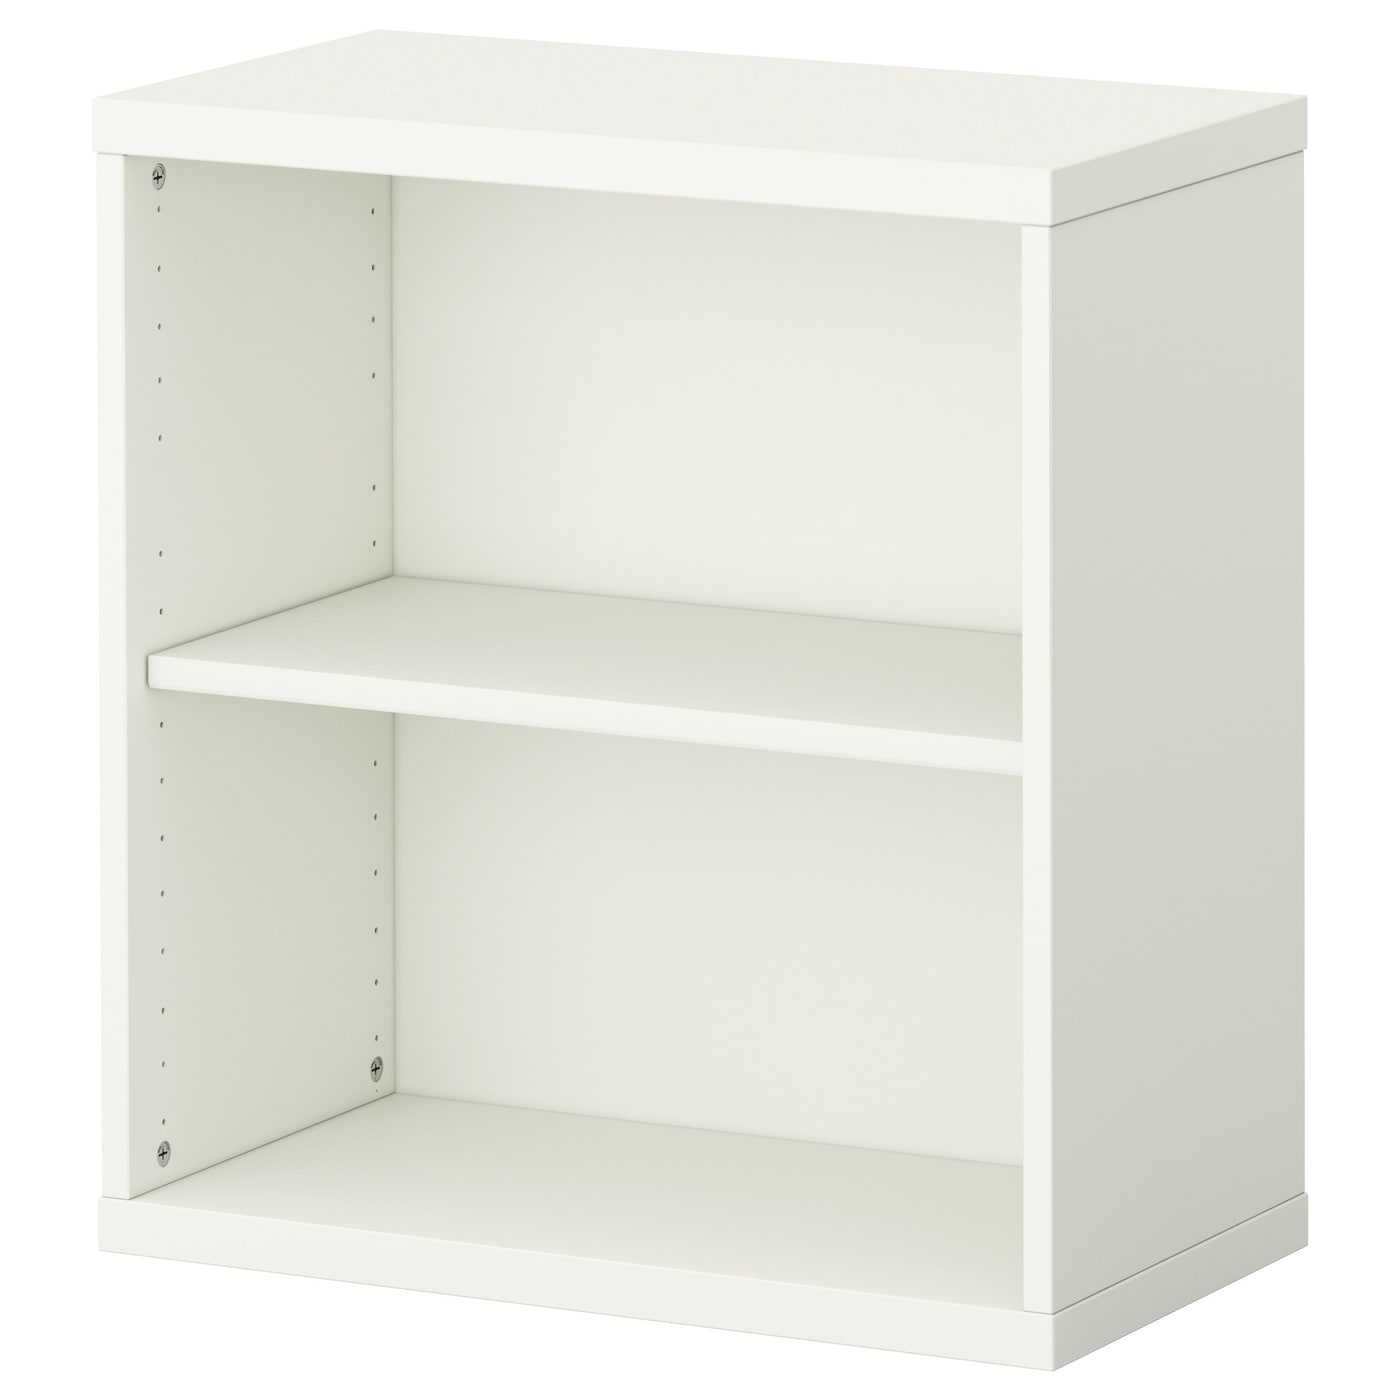 IKEA STUVA wall shelf Can stand on the floor or be hung on the wall.